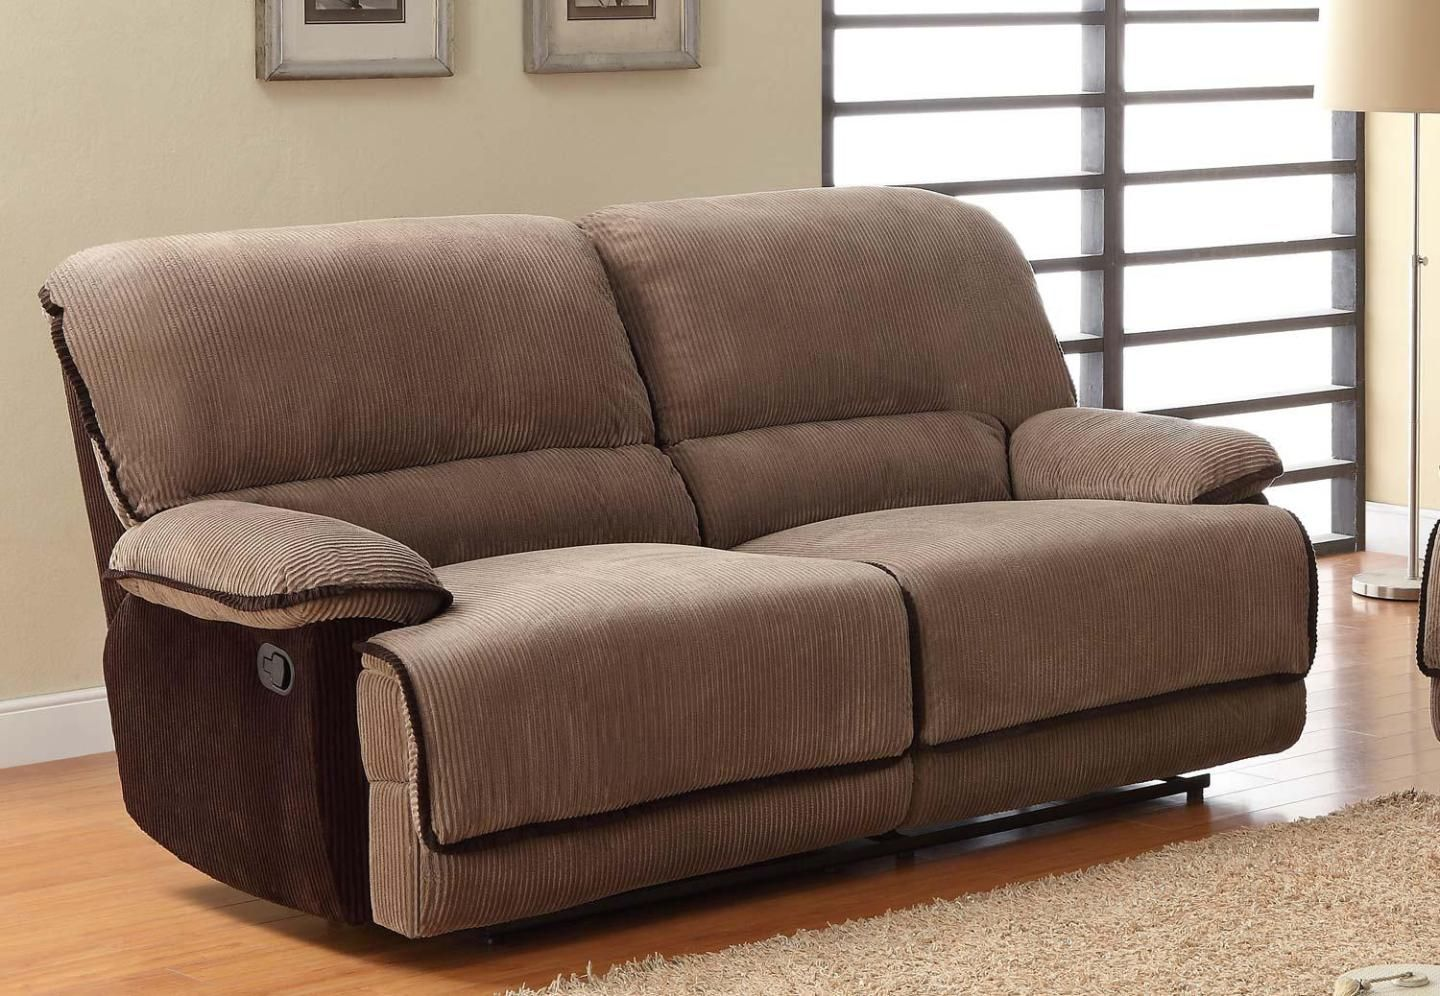 Recliner Sofa Covers A Comfortable Look With Elegance For Daily Use Reclining Sofa Reclining Sofa Slipcover Recliner Cover